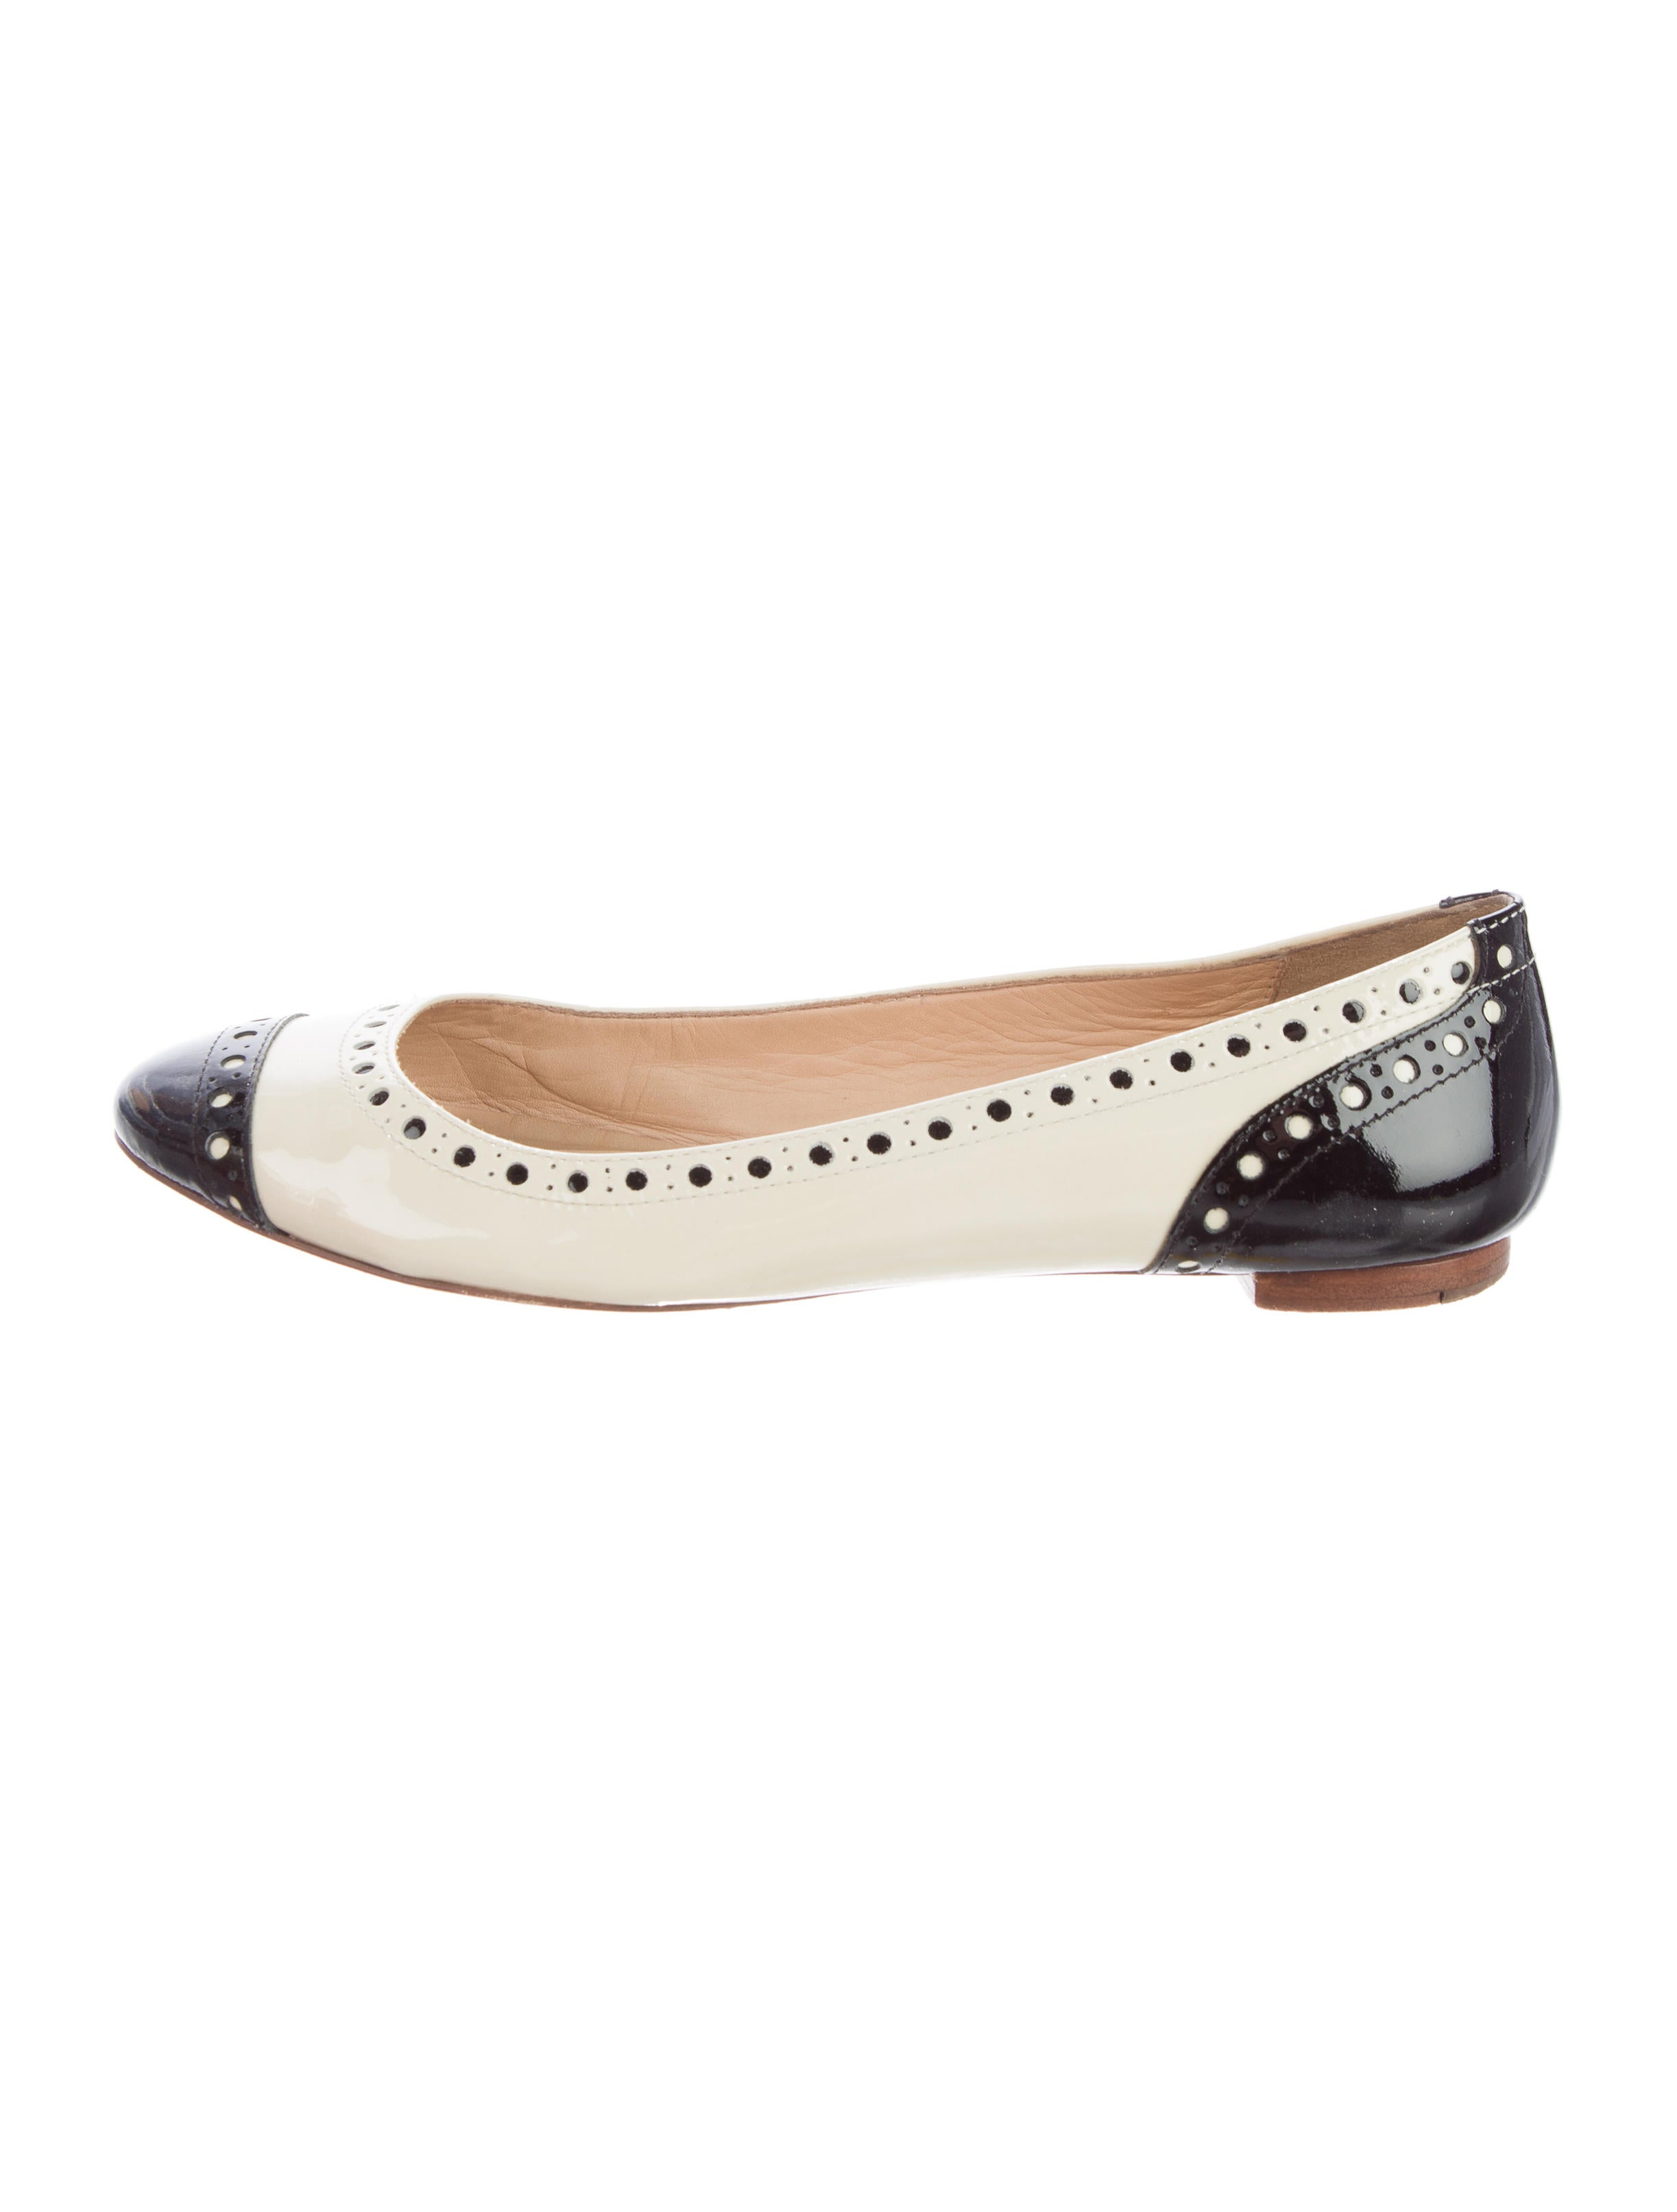 8b2d62c7639c Kate Spade New York Tuttie Patent Leather Round-Toe Flats - Shoes ...